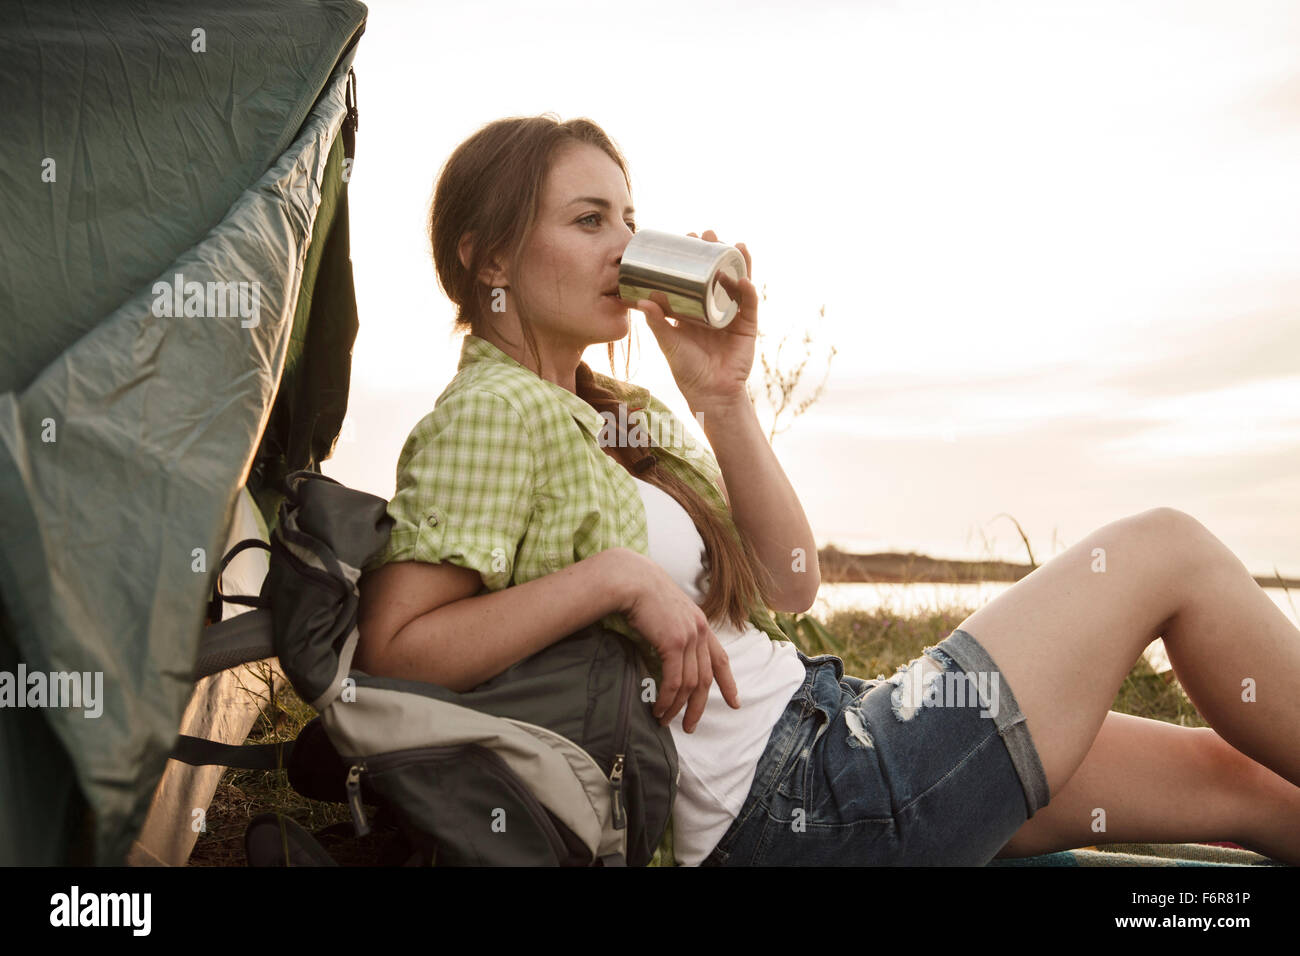 Young woman at campsite drinking cup of coffee Stock Photo